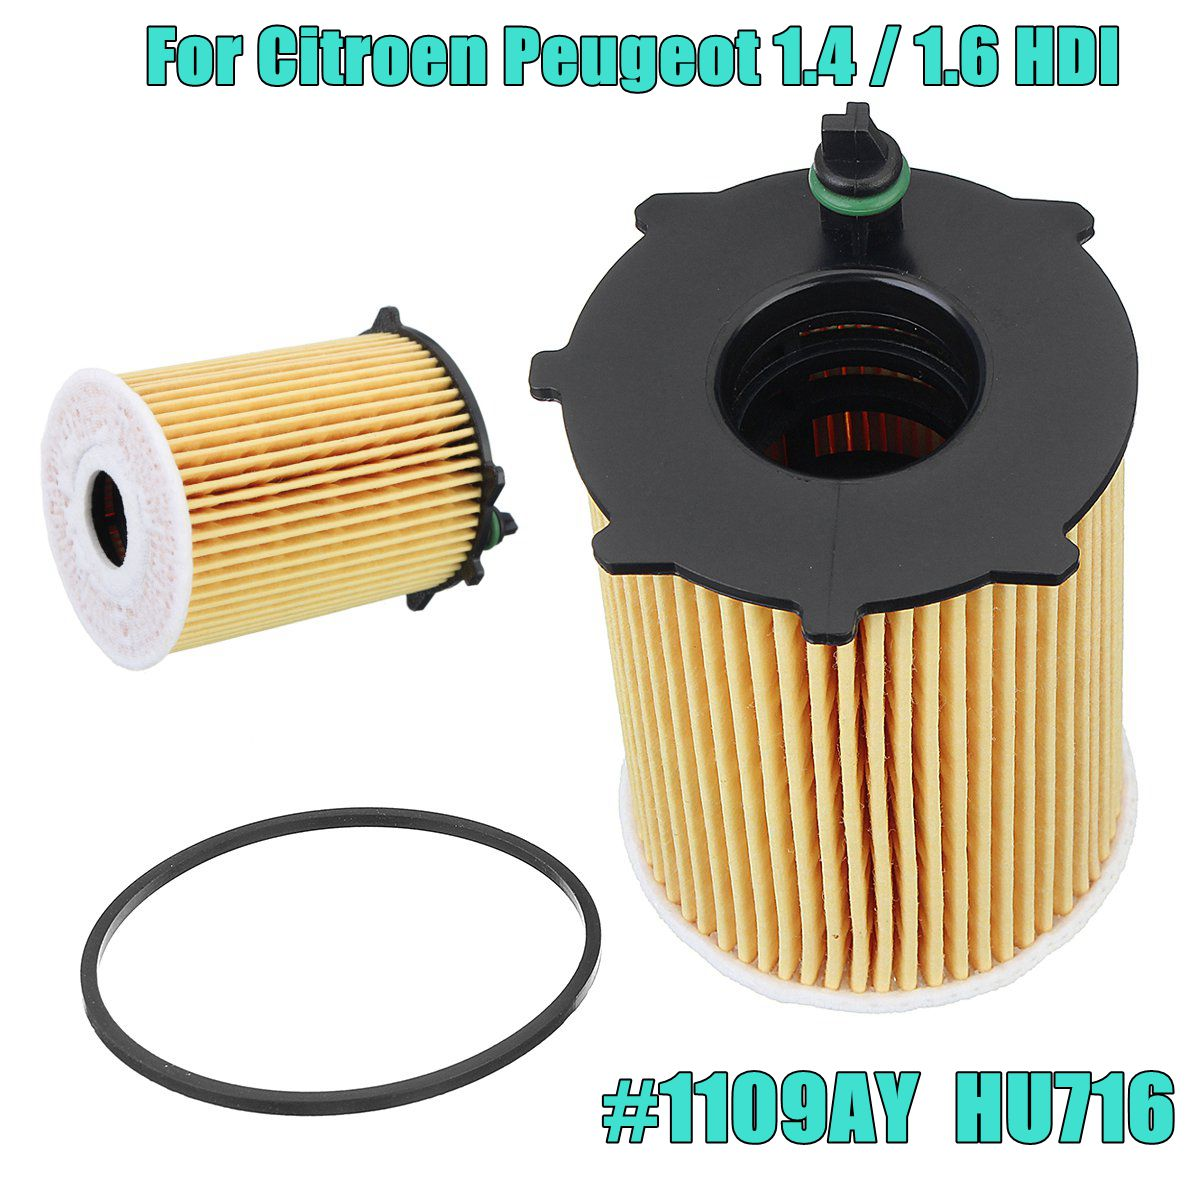 1pc-new-engine-oil-filter-with-gasket-kit-for-citroen-for-peugeot-14-16-hdi-1109ay